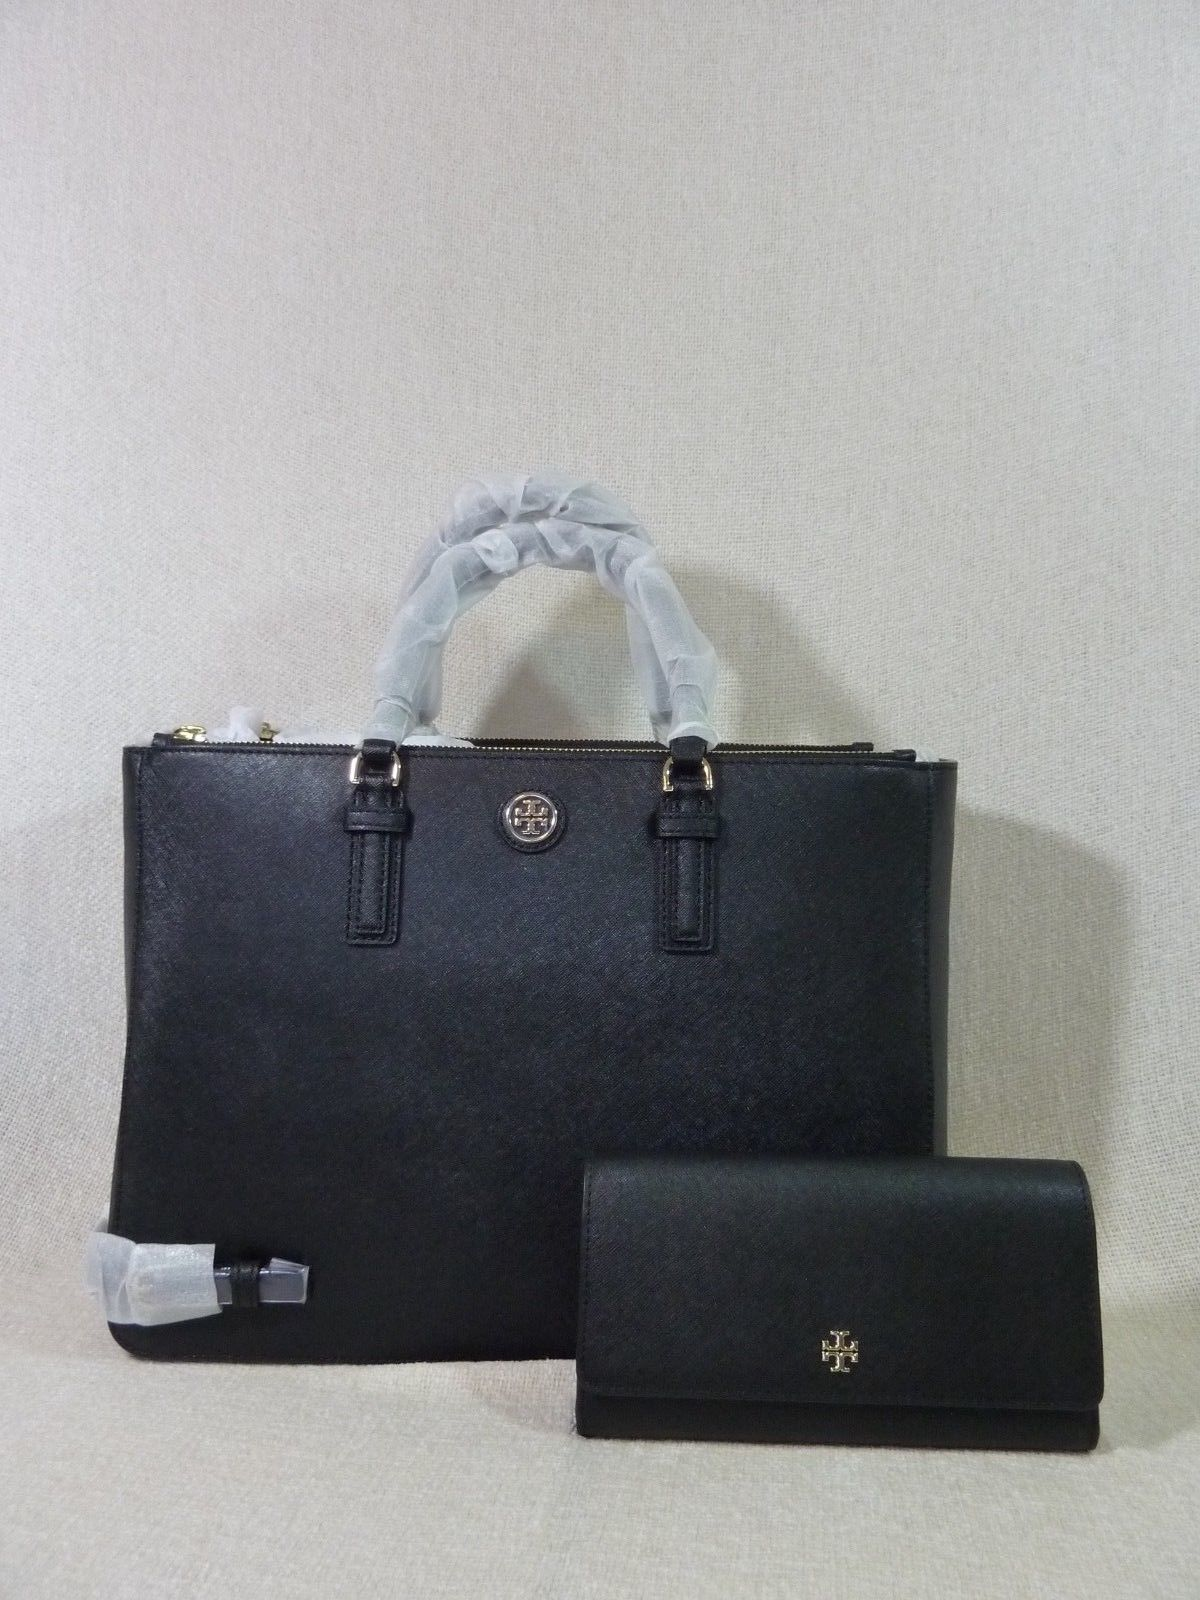 Primary image for NWT Tory Burch Black Saffiano Leather Large Robinson Multi Tote + Wallet $820